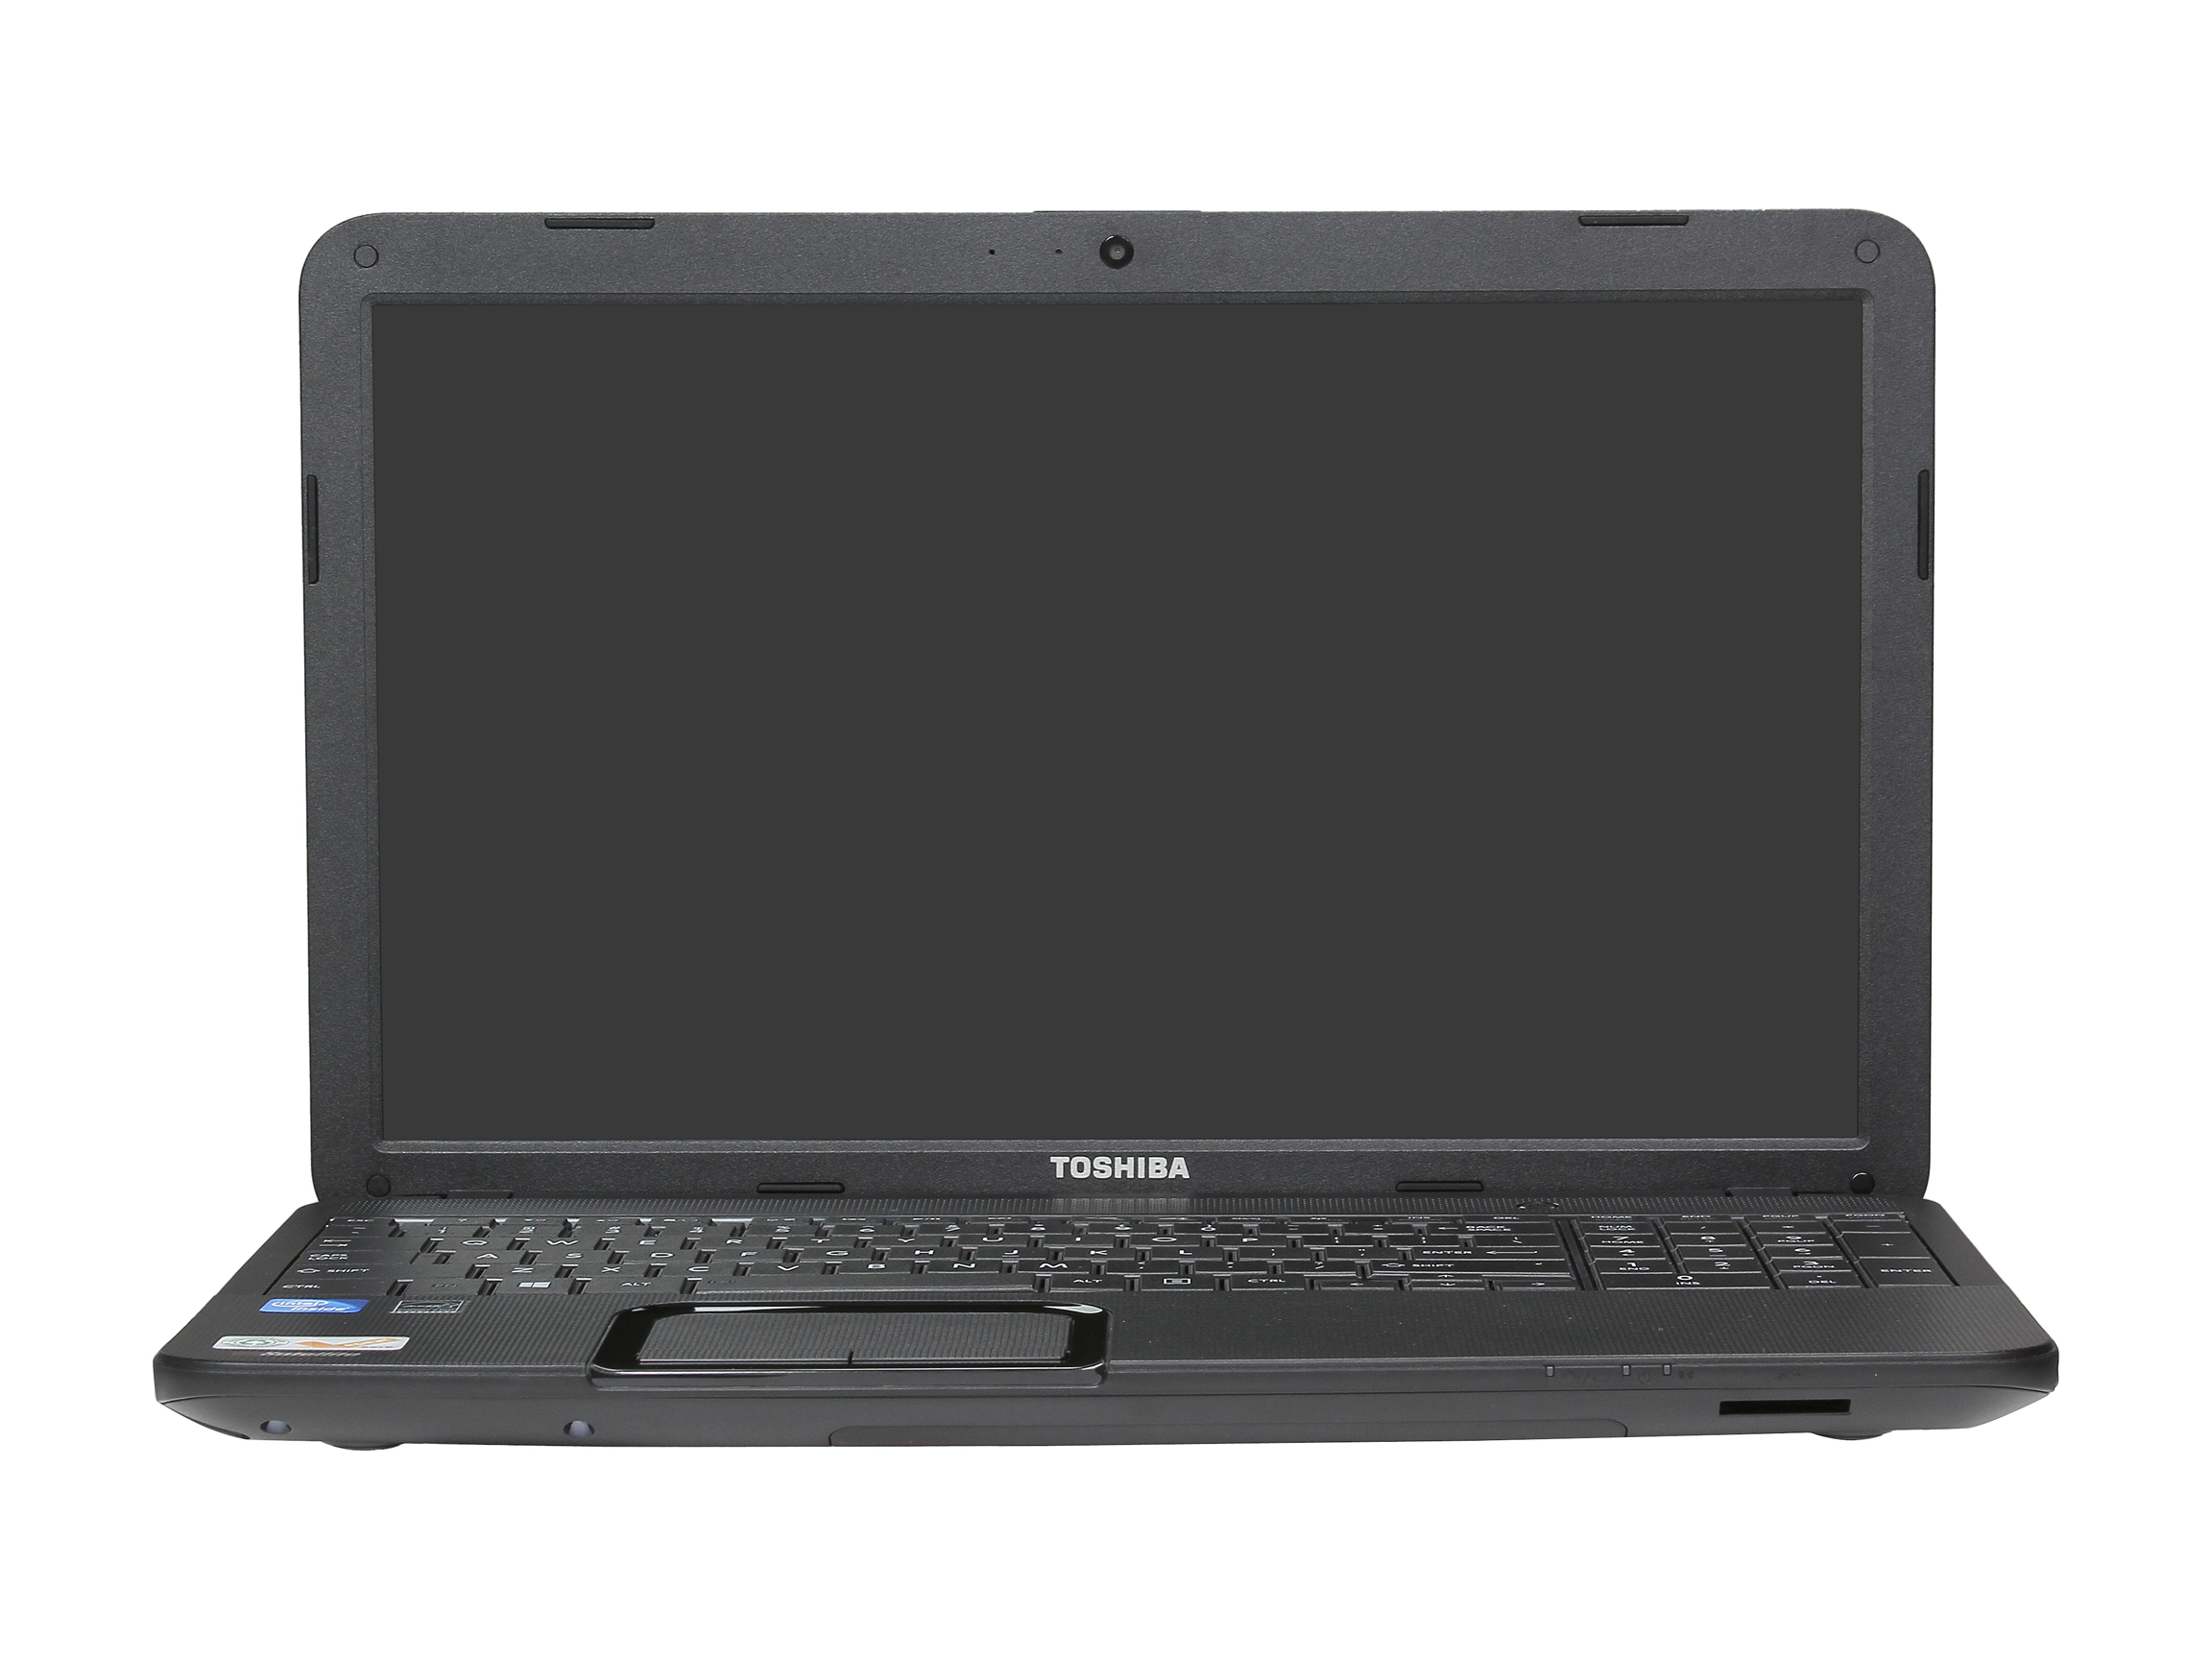 "TOSHIBA Satellite C855-S5346 Notebook Intel Celeron 847 (1.1GHz) 4GB Memory 320GB HDD Intel HD Graphics 15.6"" Windows 8"